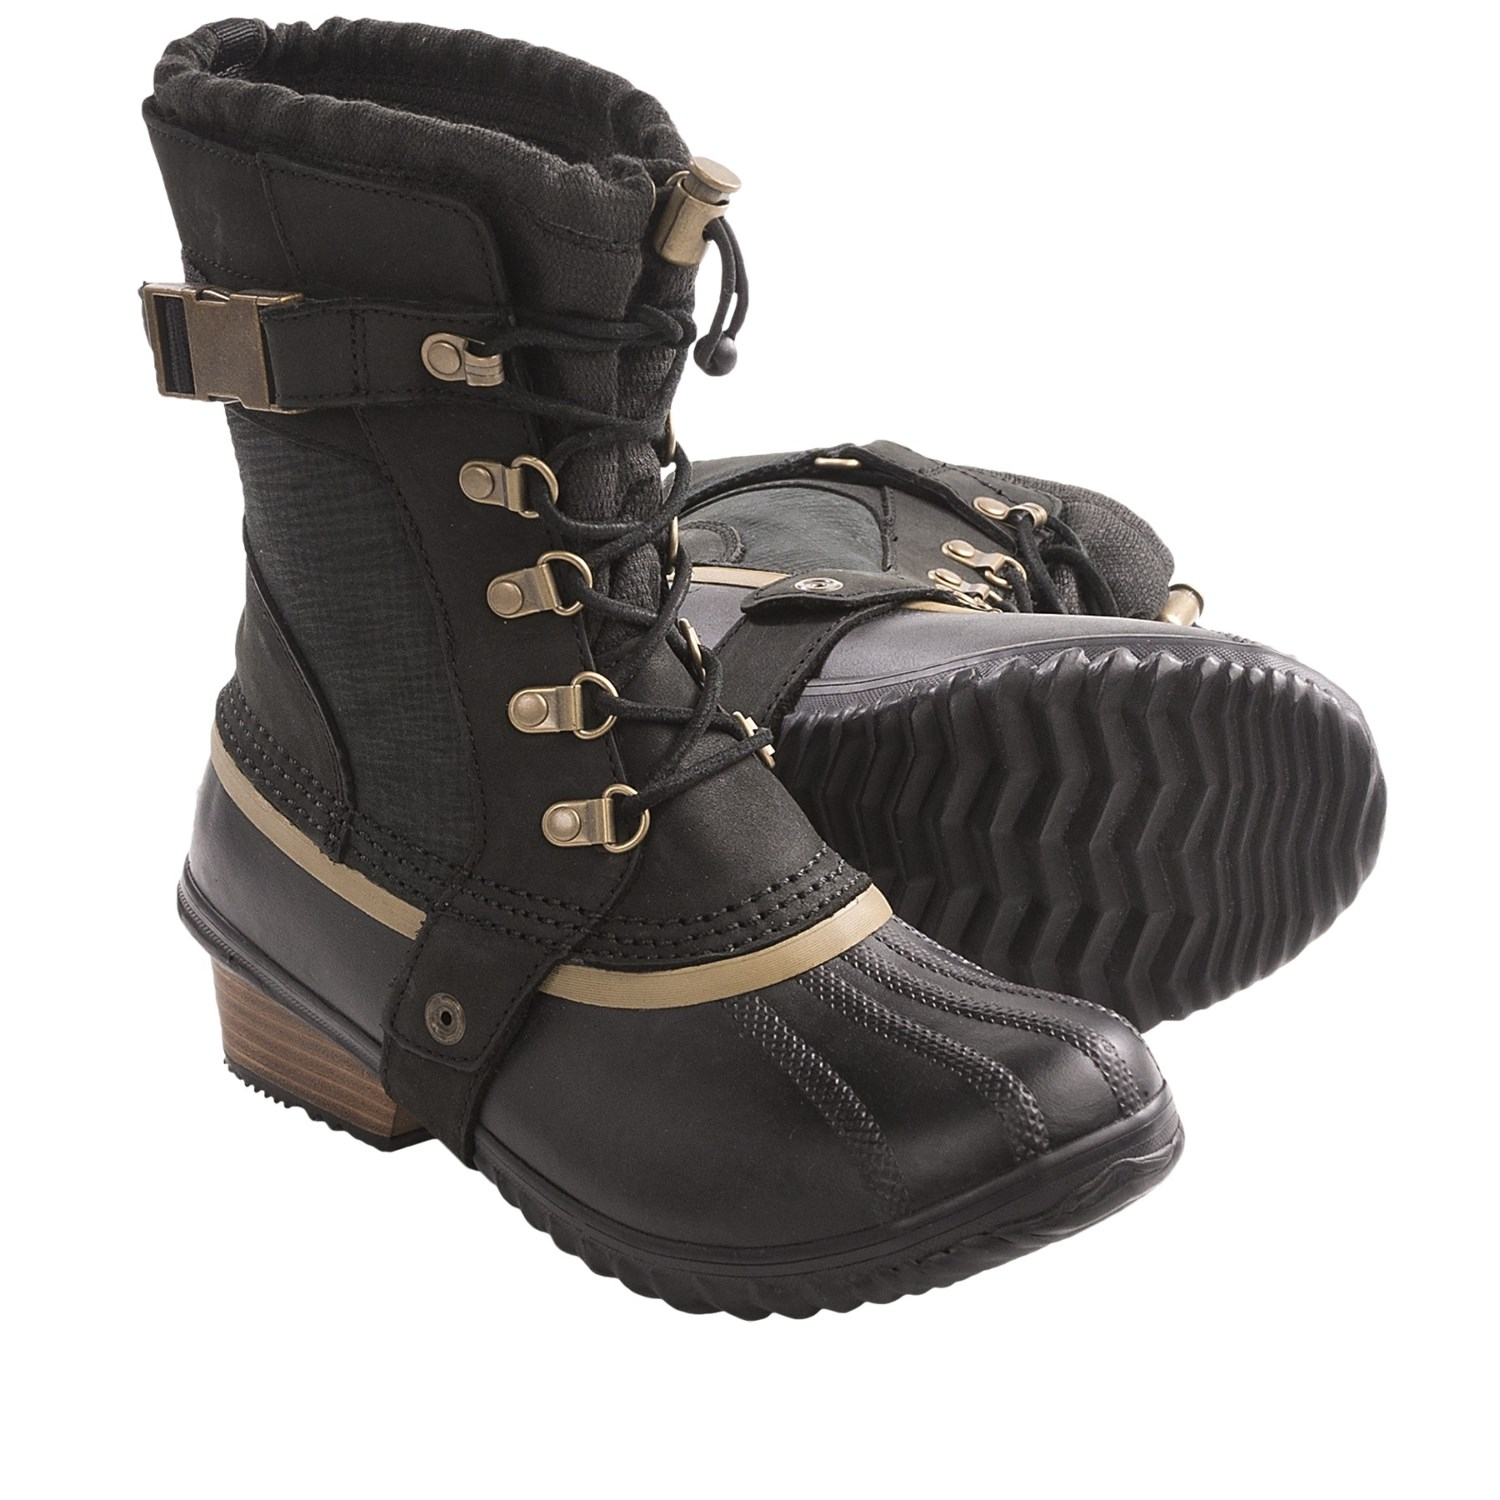 Amazing Sorel Winter Boots For Women Range From $75 Short Boots To $130 For Mid High Boots And A S High As $200 For High Boots Mens Sorel Boots Can Be From $80$90 Childrens Sorel Boots Can Be From $50 Sorel Winter Boots For